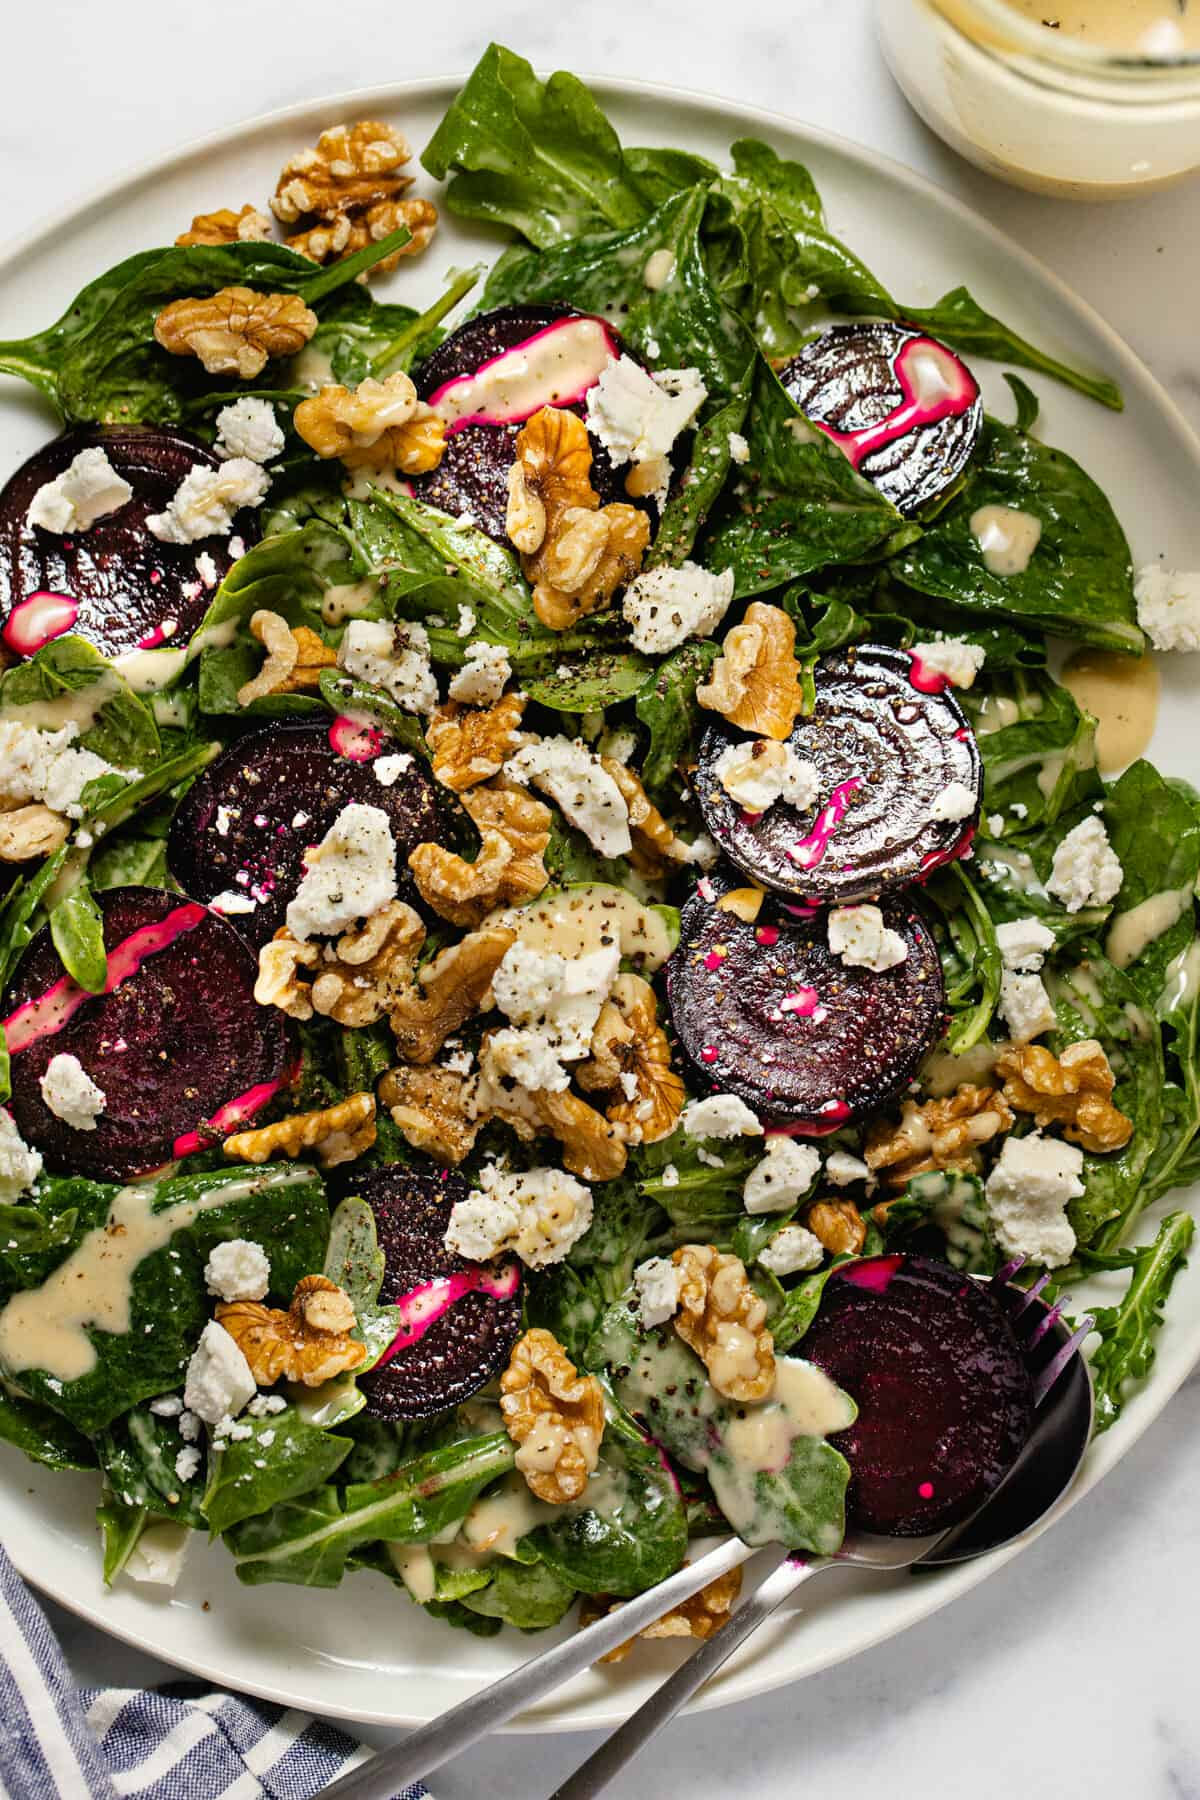 Overhead shot of a white plate filled with beet salad with feta and walnuts